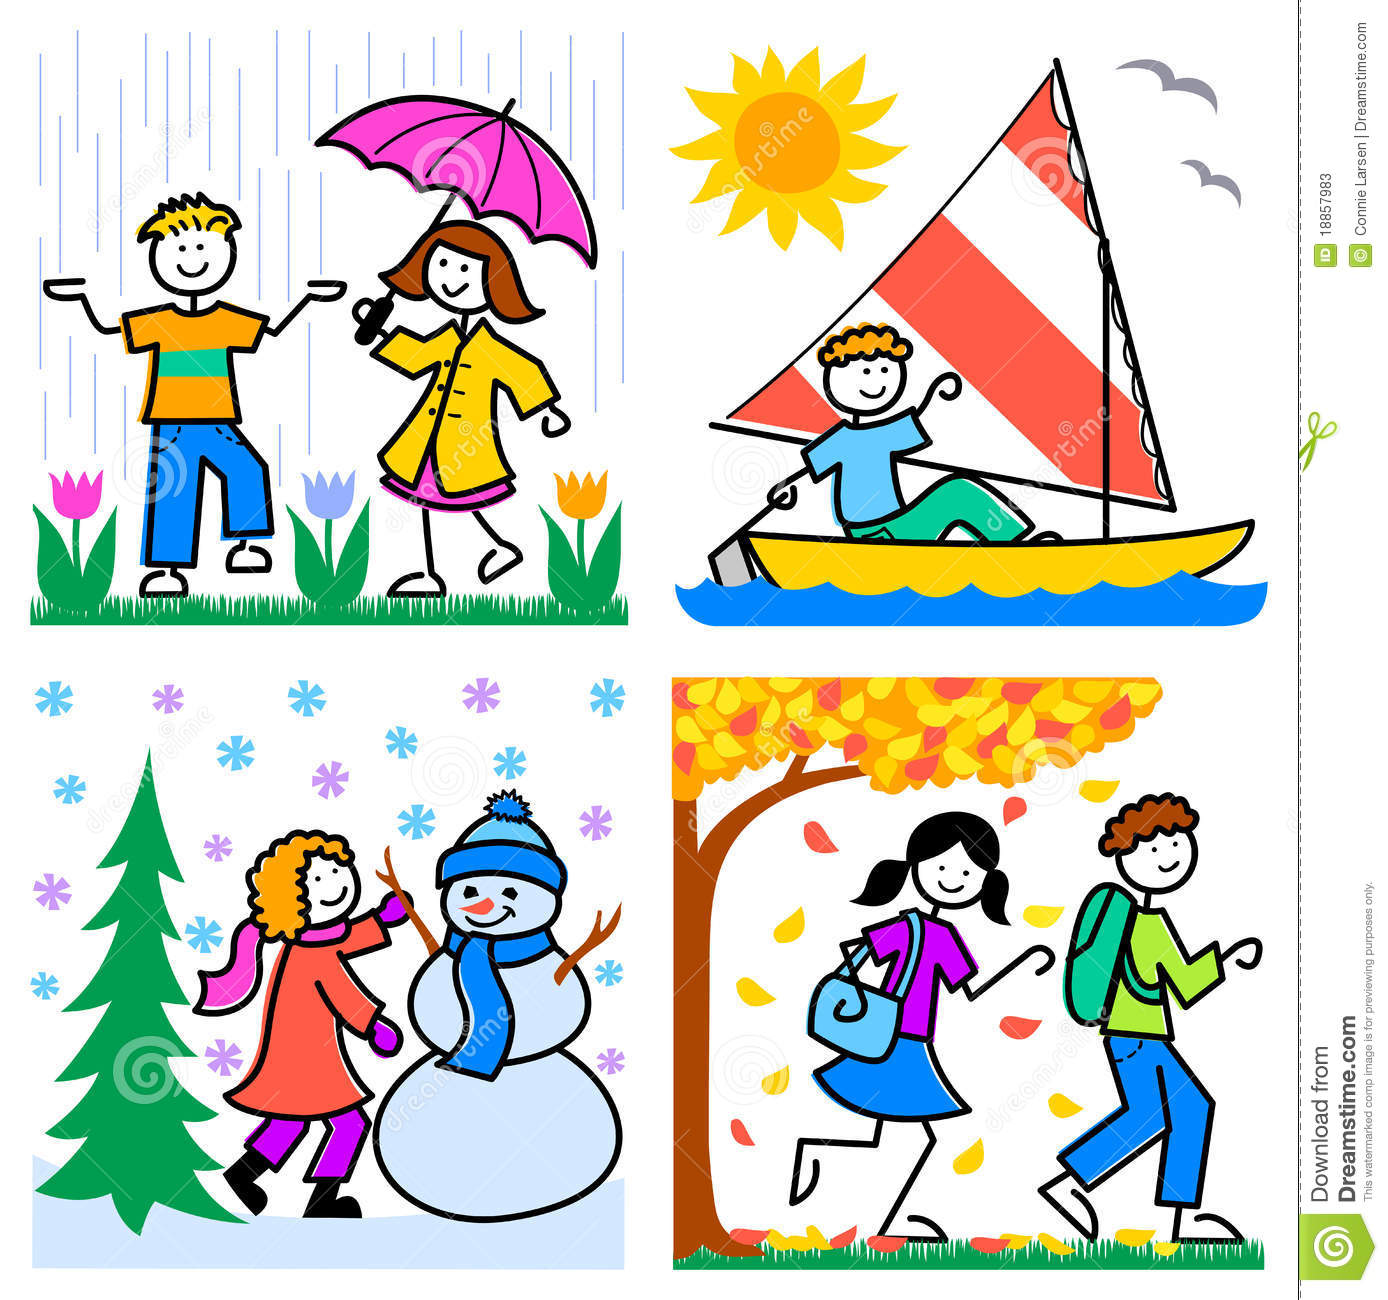 Of Active Children In Activities Representing The Four Season